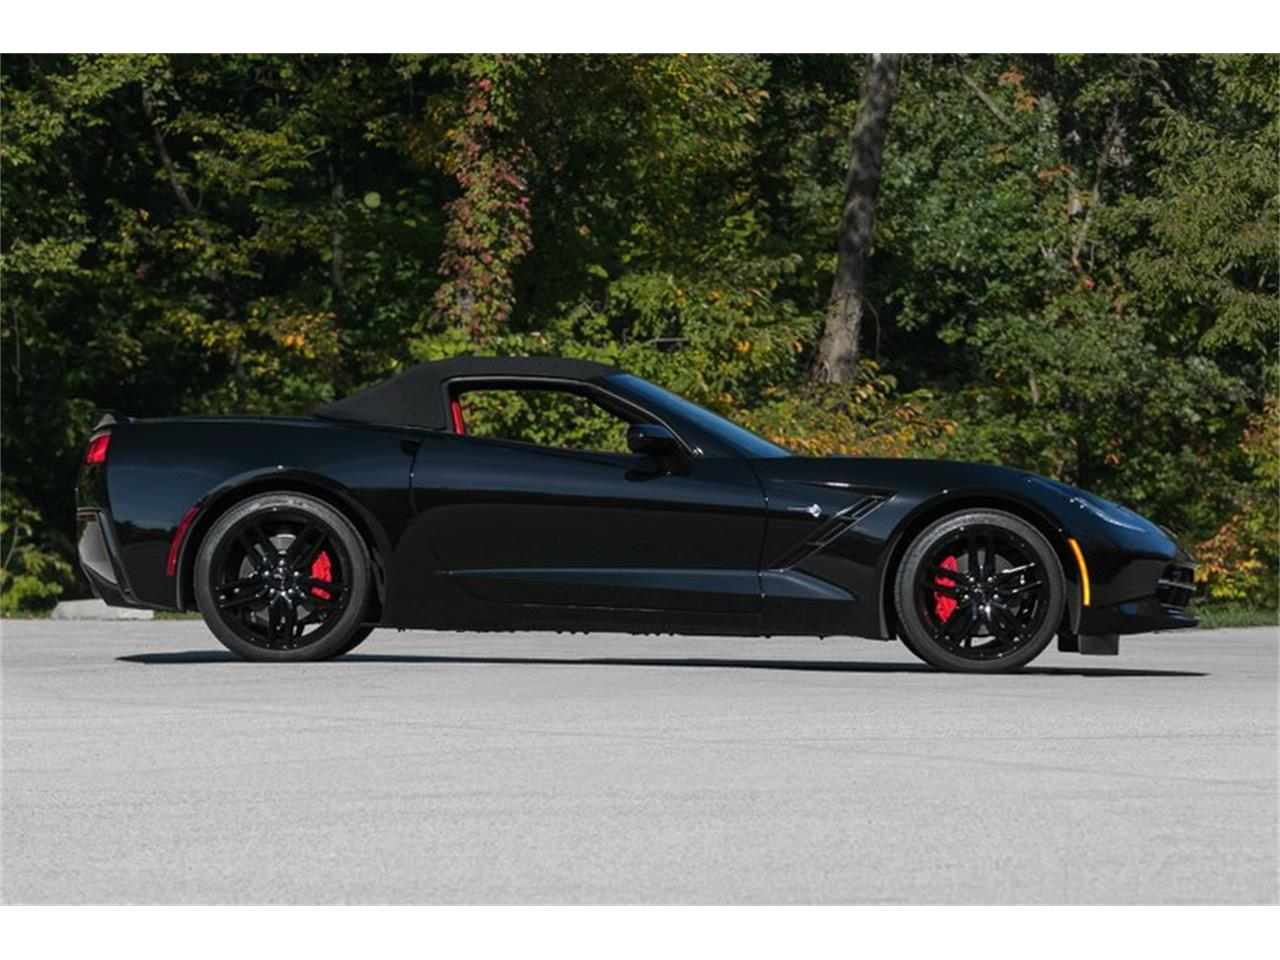 2016 Chevrolet Corvette for sale in St. Charles, MO – photo 10